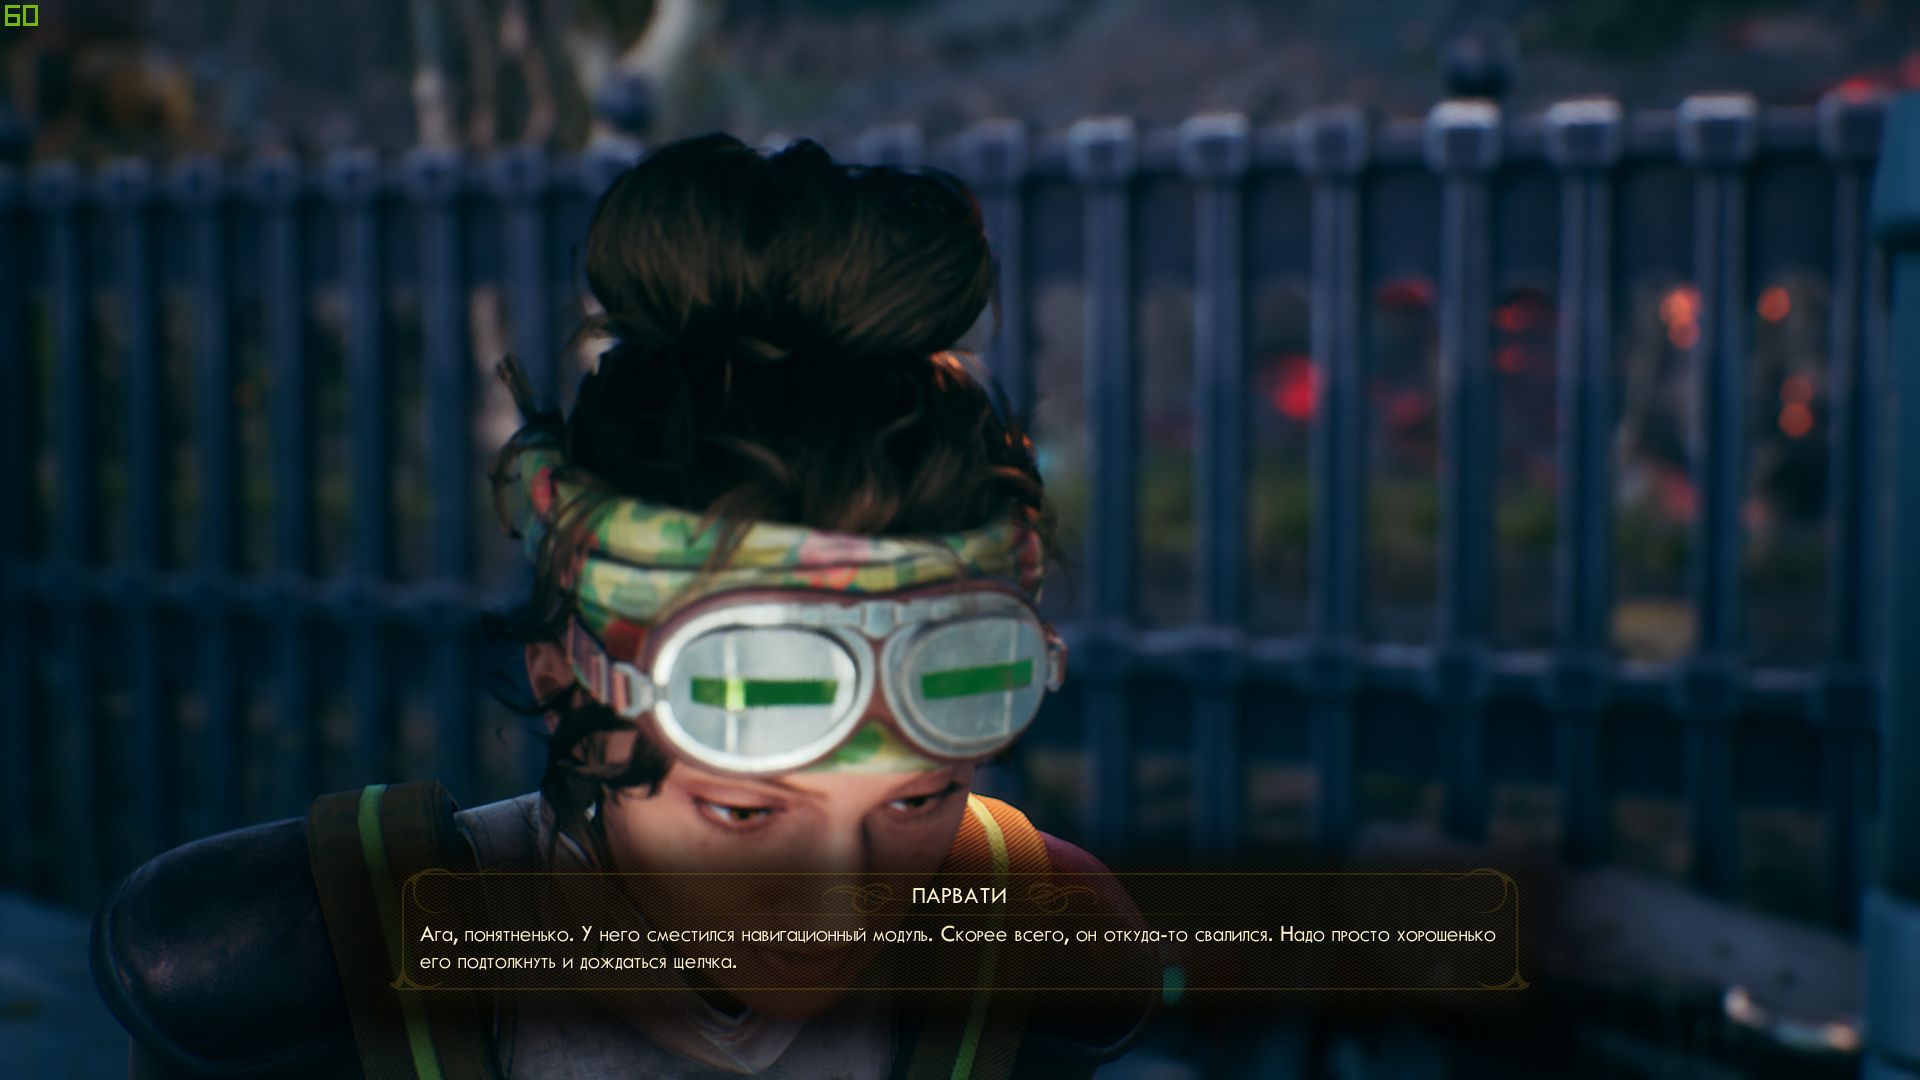 00056.Jpg - Outer Worlds, the